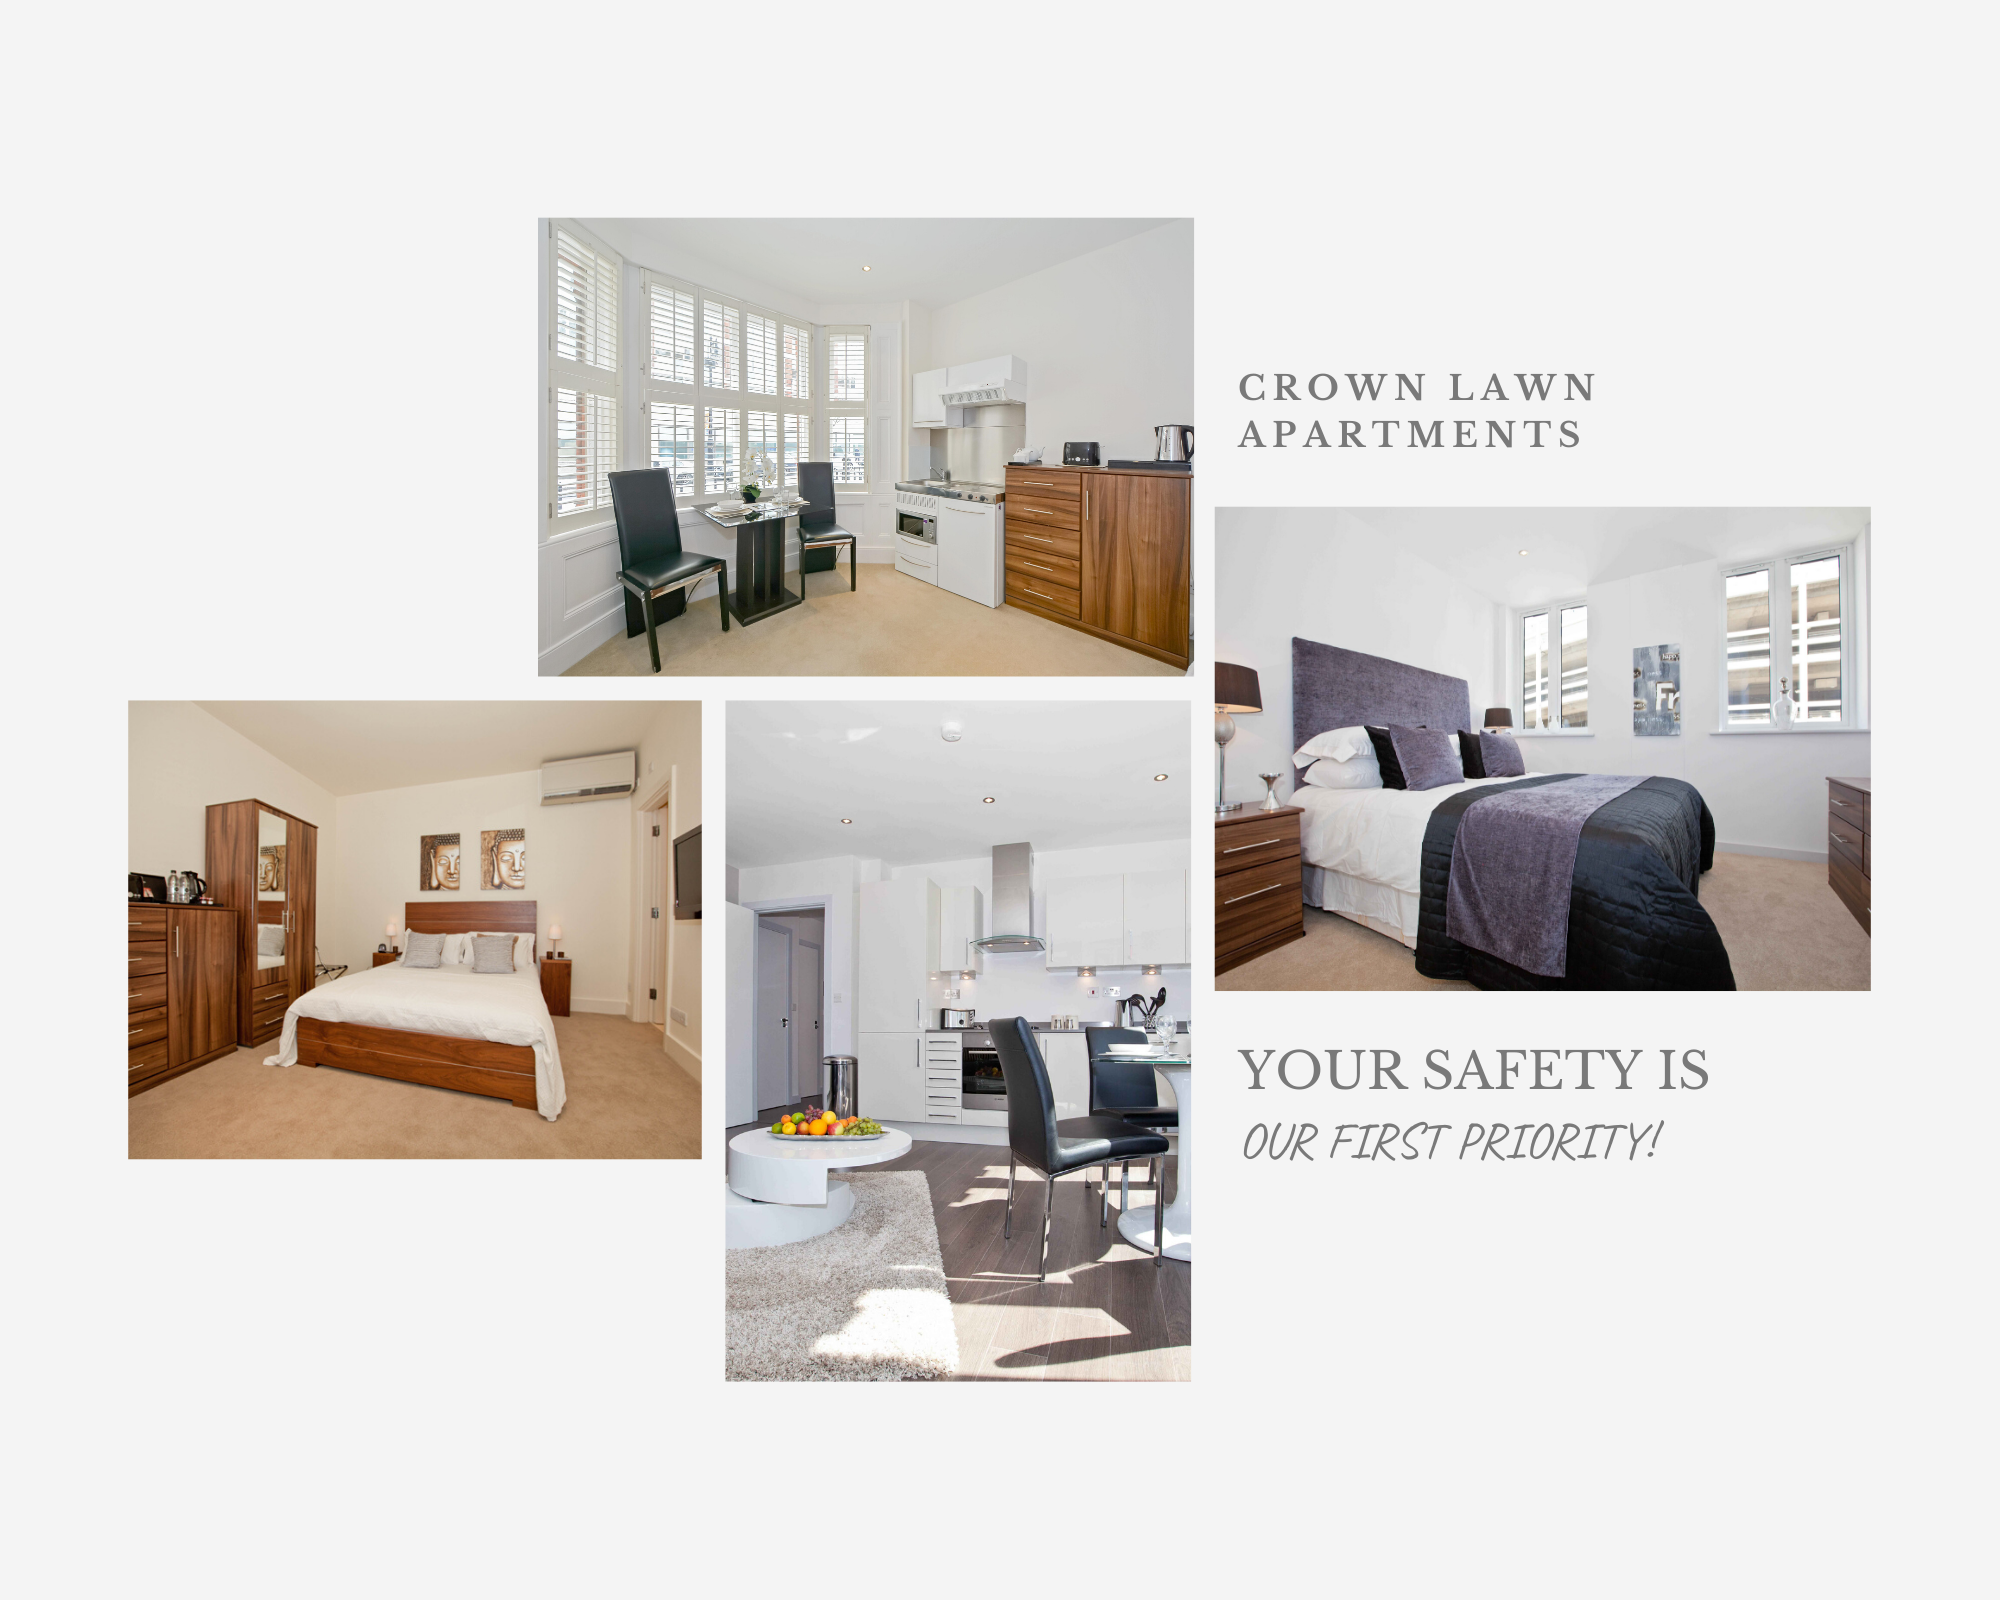 Space & Freedom Of A Serviced Apartment During Covid-19